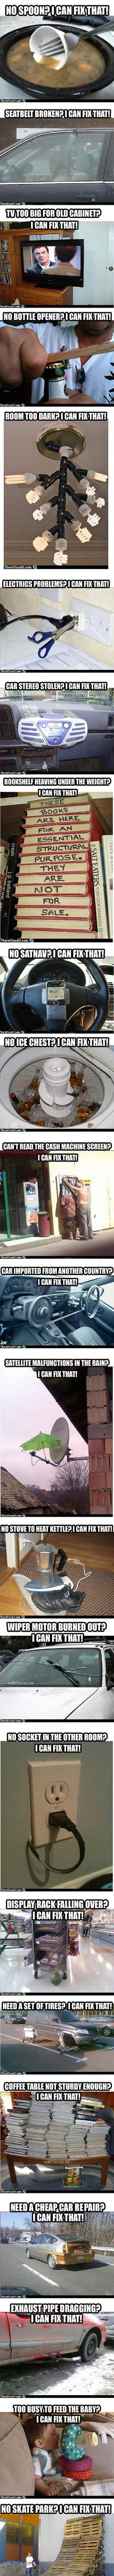 The 23 Best 'I Can Fix That!' Memes